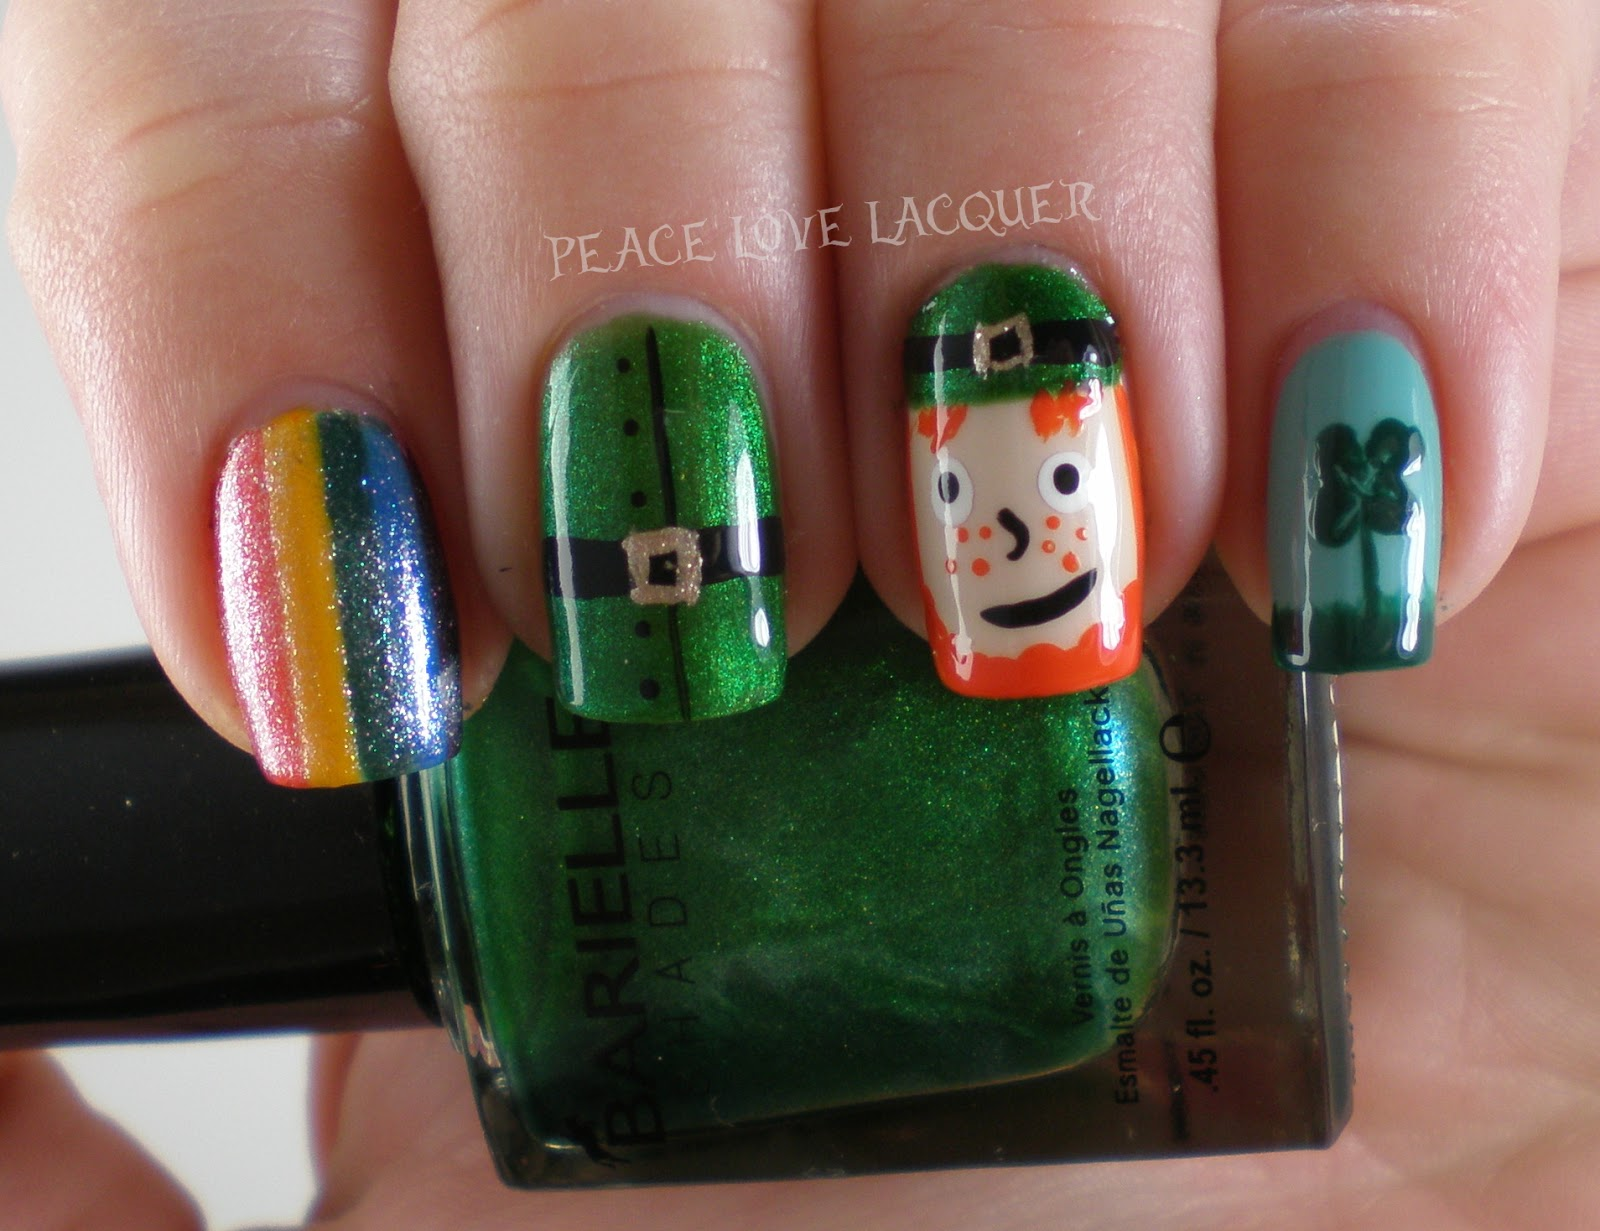 Peace Love Lacquer: Nail Art Gallery